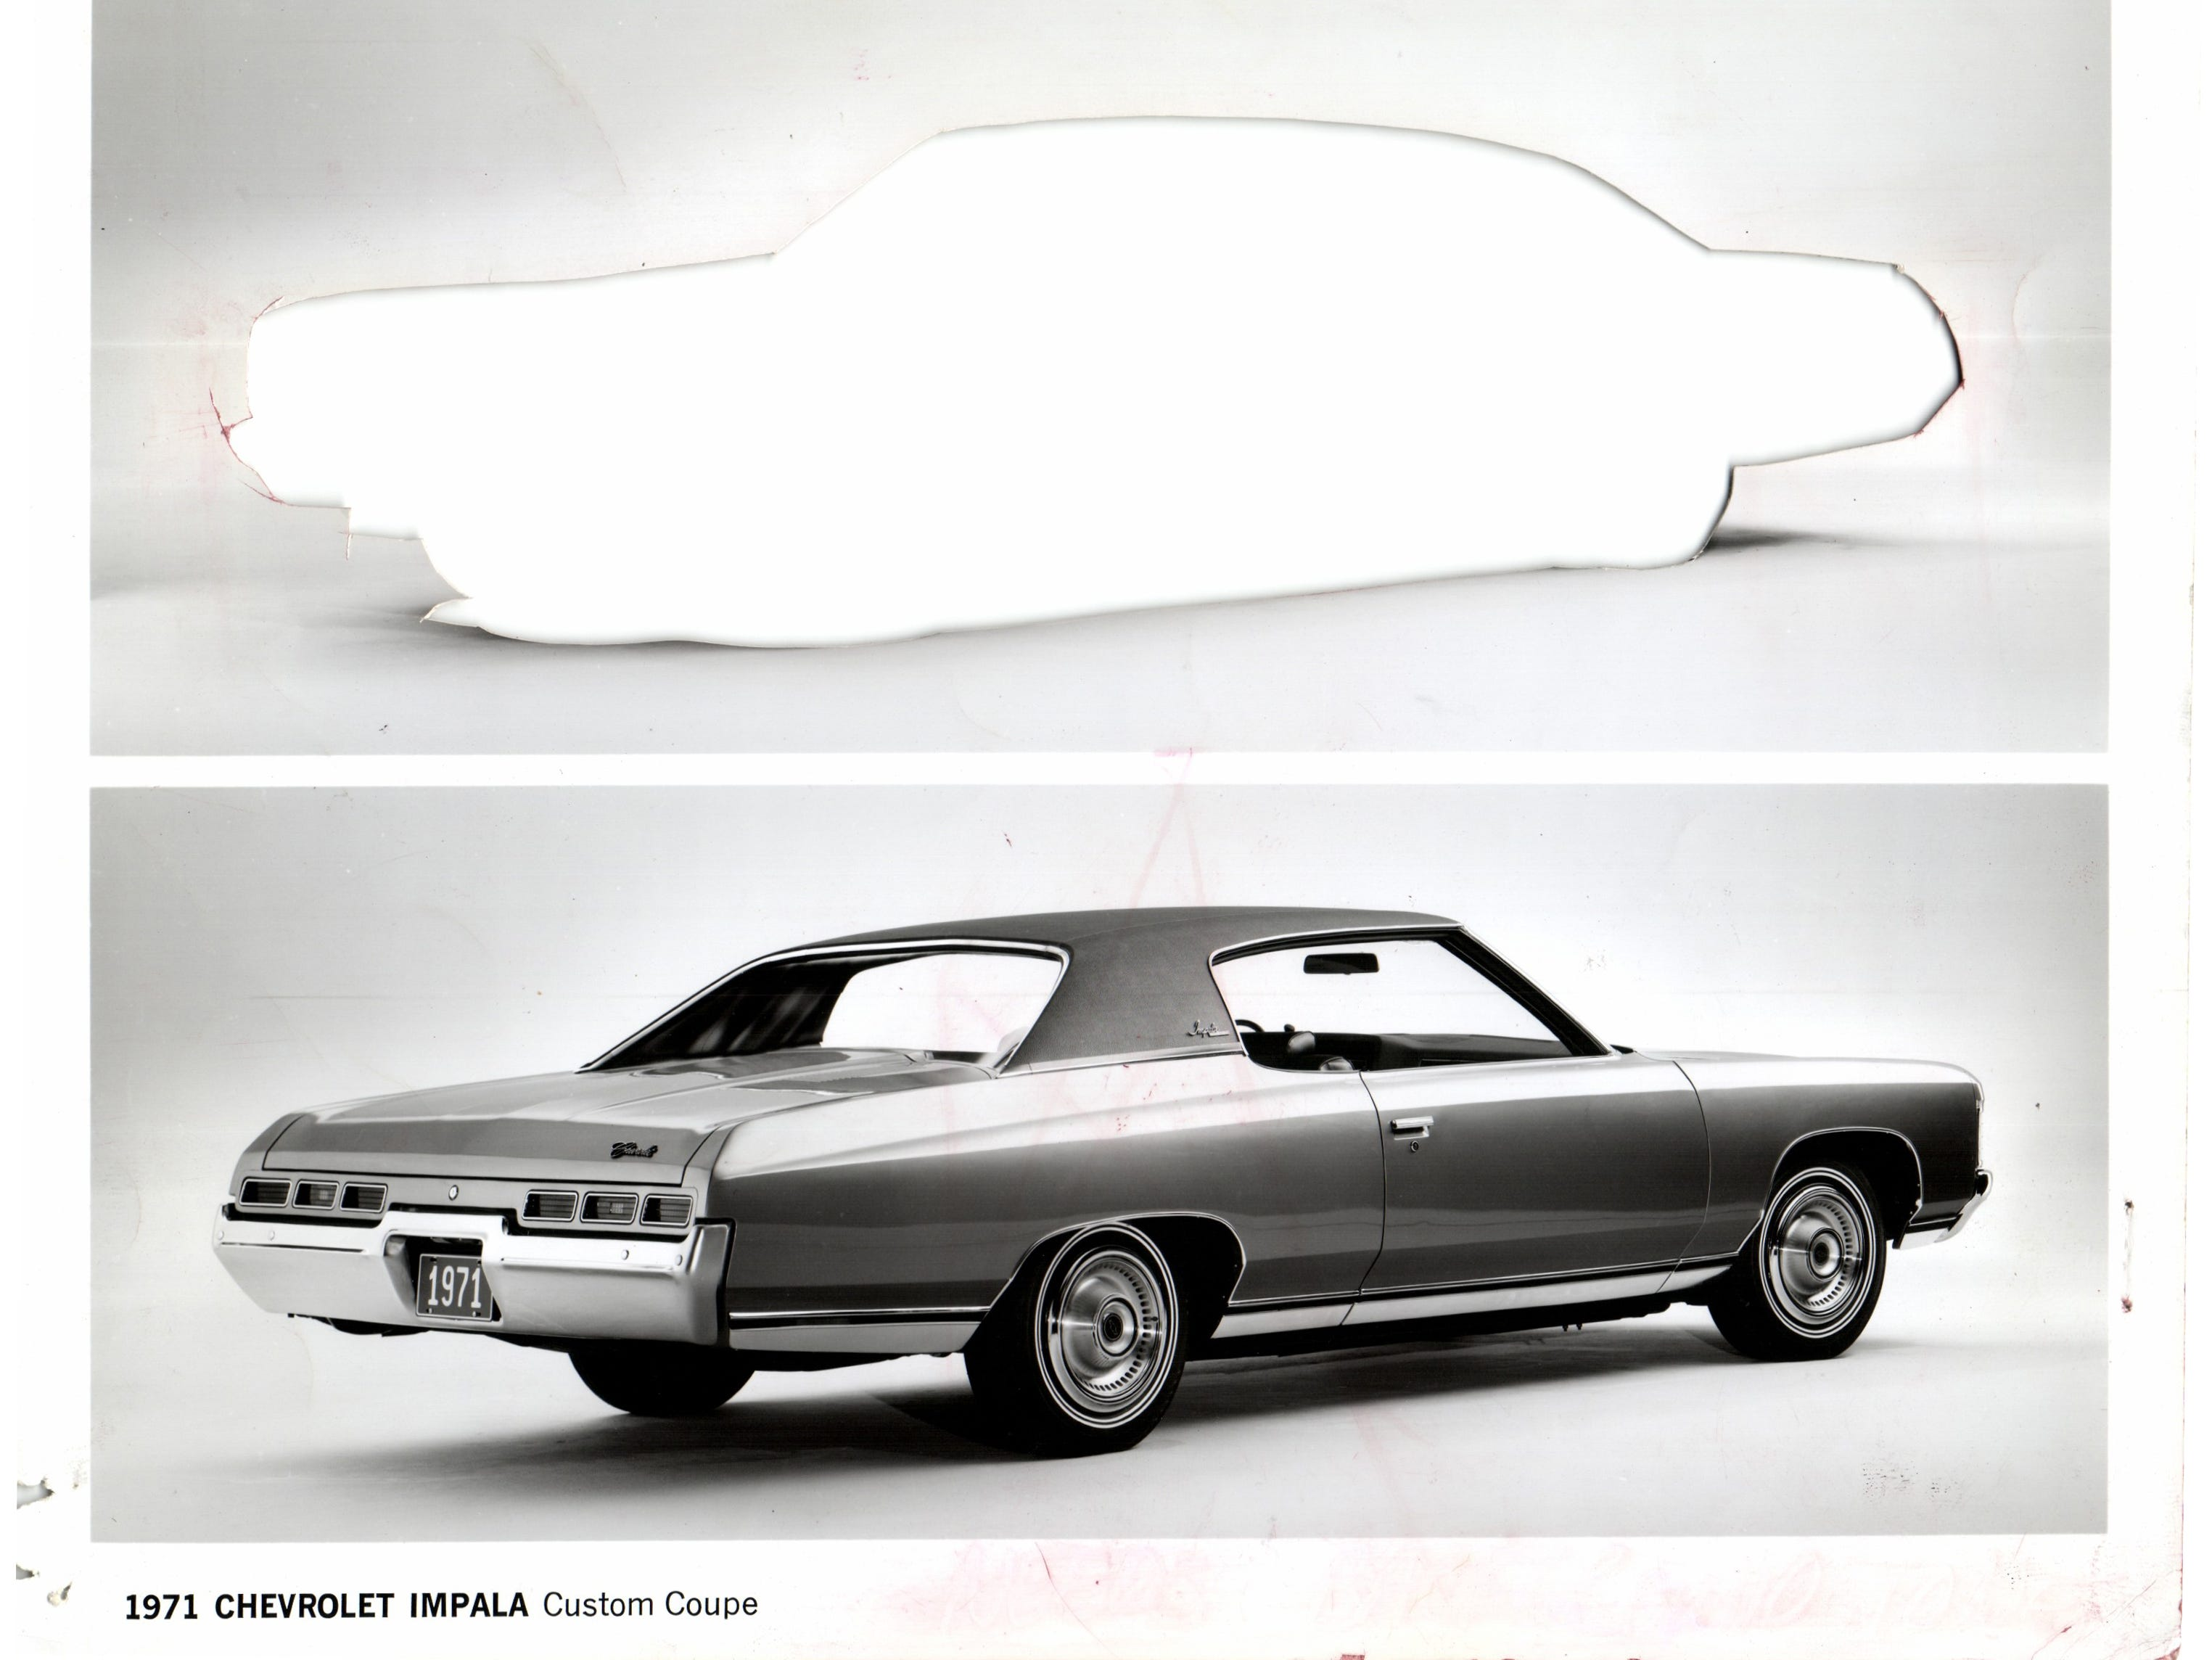 1971 Chevrolet Impala Custom Coupe.